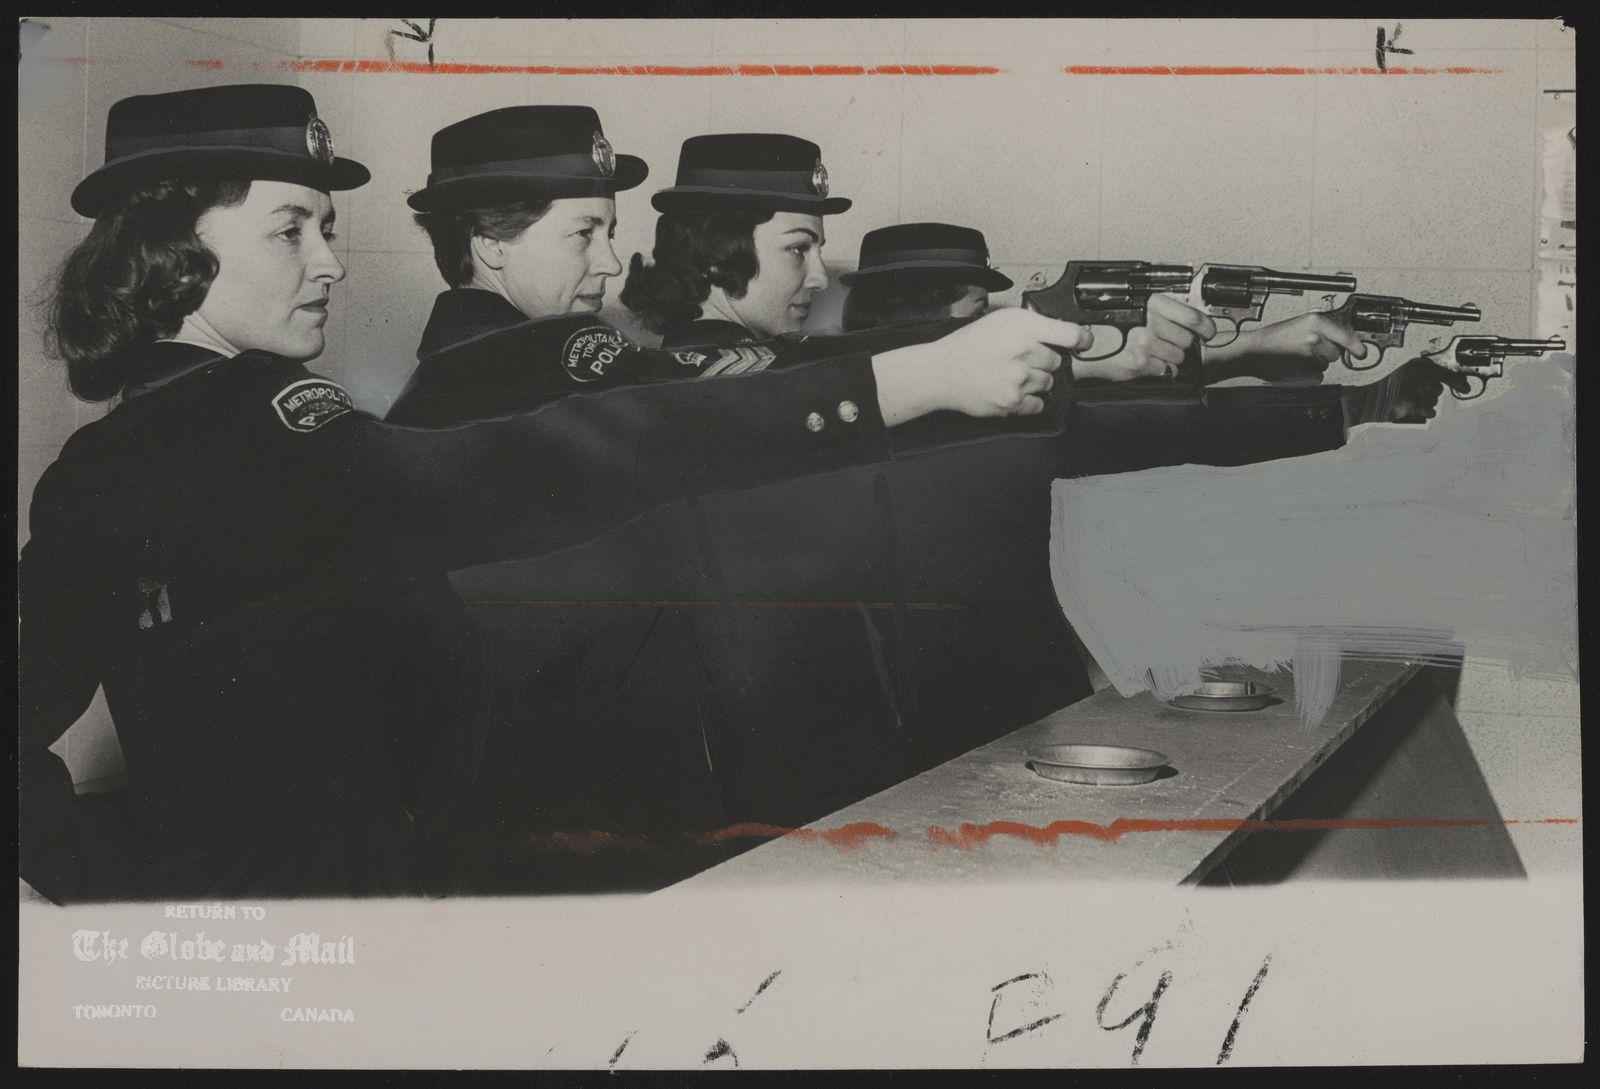 TORONTO metro Police Dept. The slender arm of the law -- Shirley Boileau,Sgt. Fern Alexander, and sisters Linda and Diana Boag practise shooting .38 special service revolvers